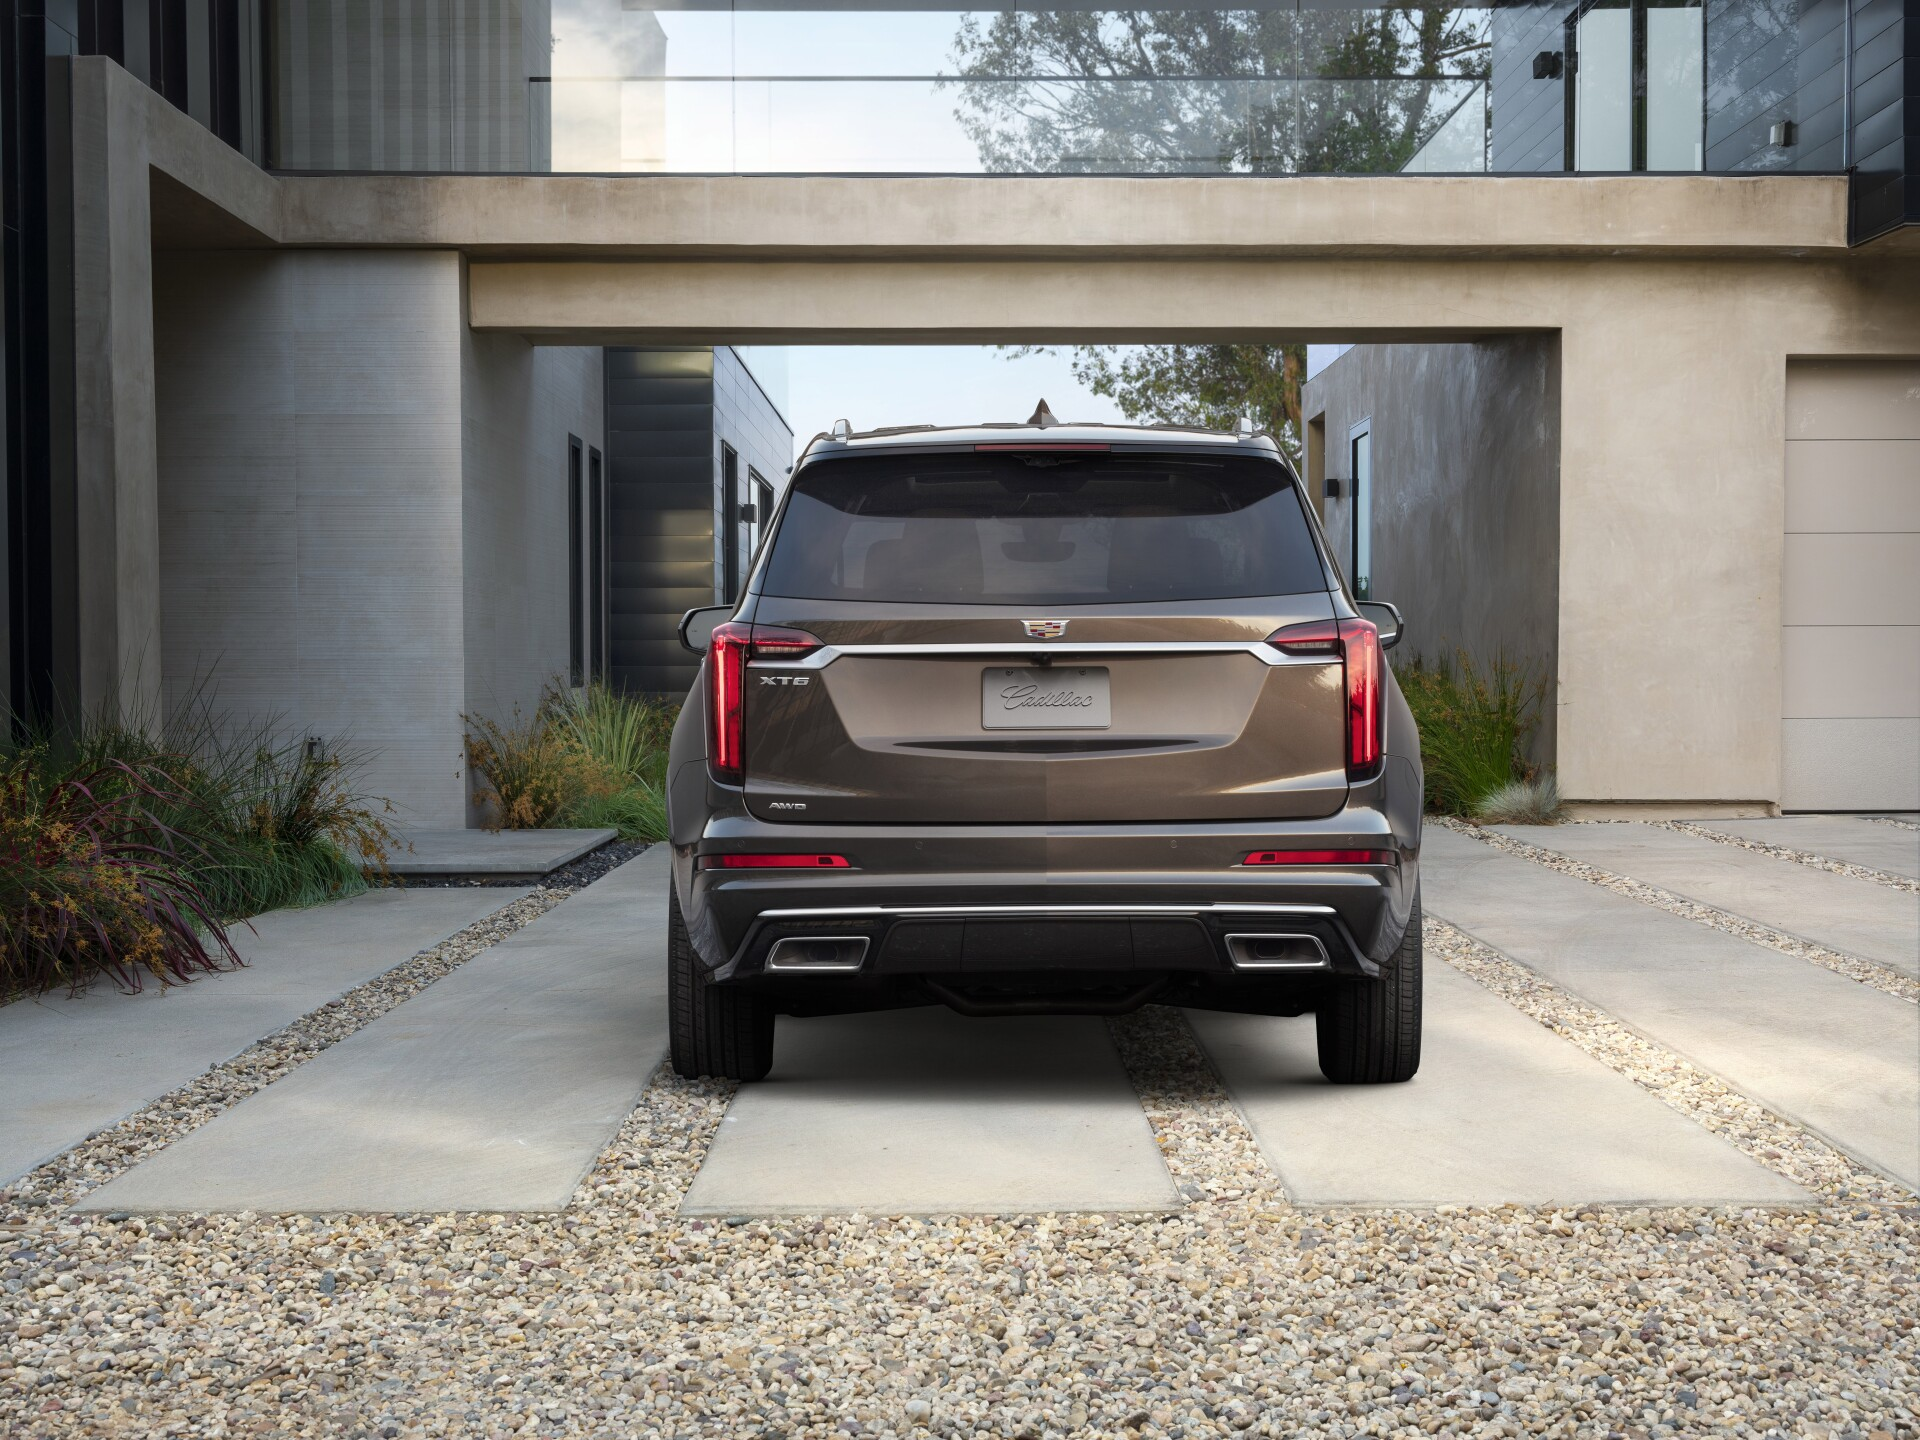 The Cadillac XT6 Premium Luxury model features unique front and